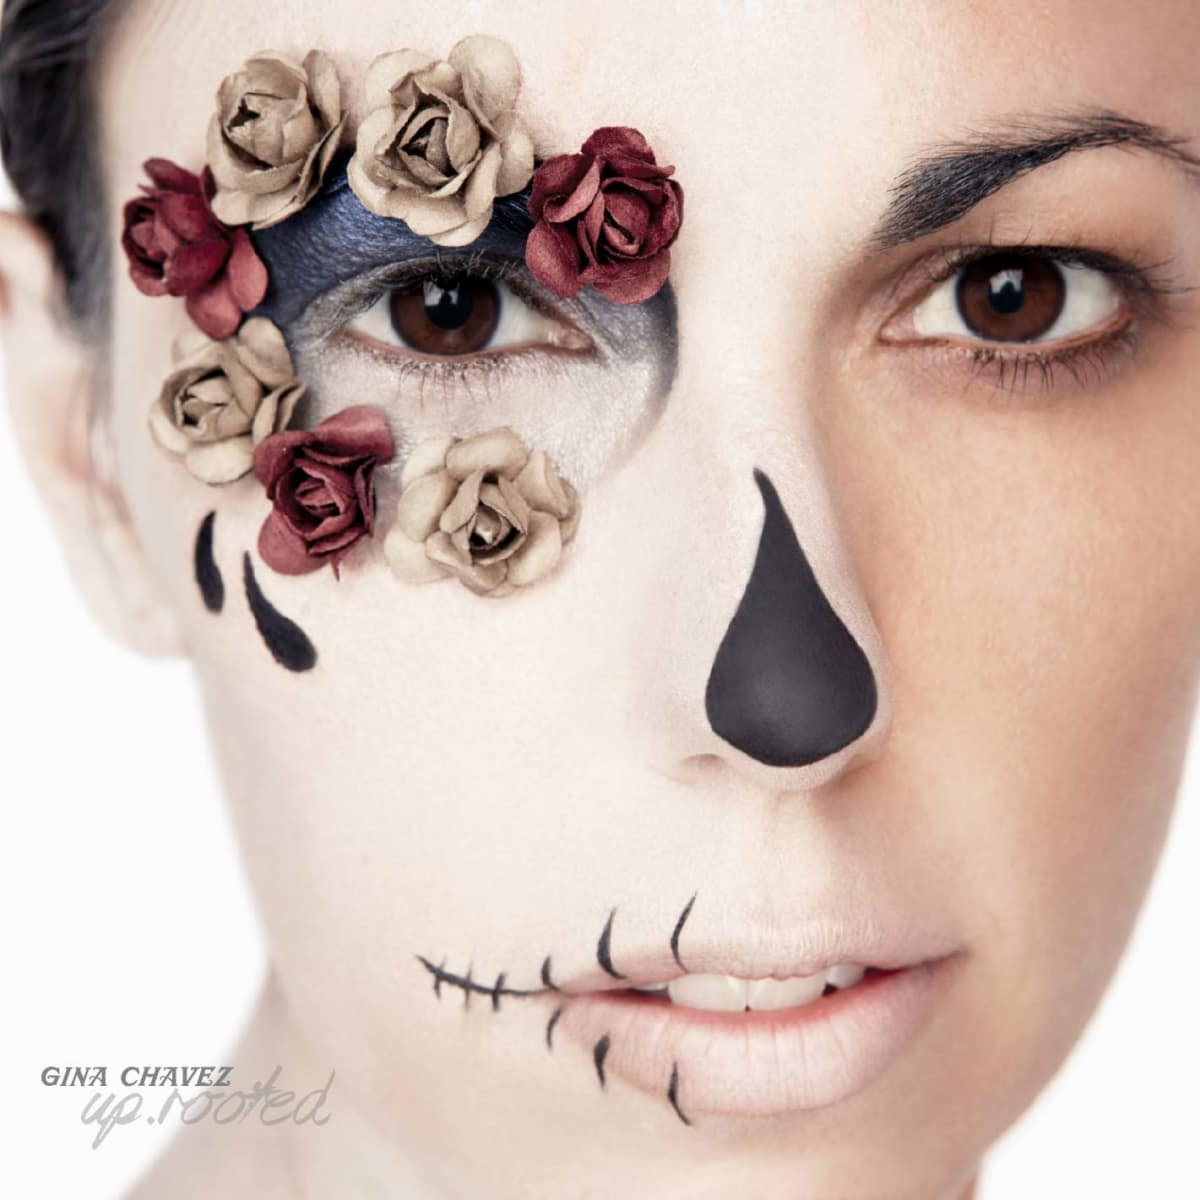 Gina Chavez on the cover of her new album UP.ROOTED